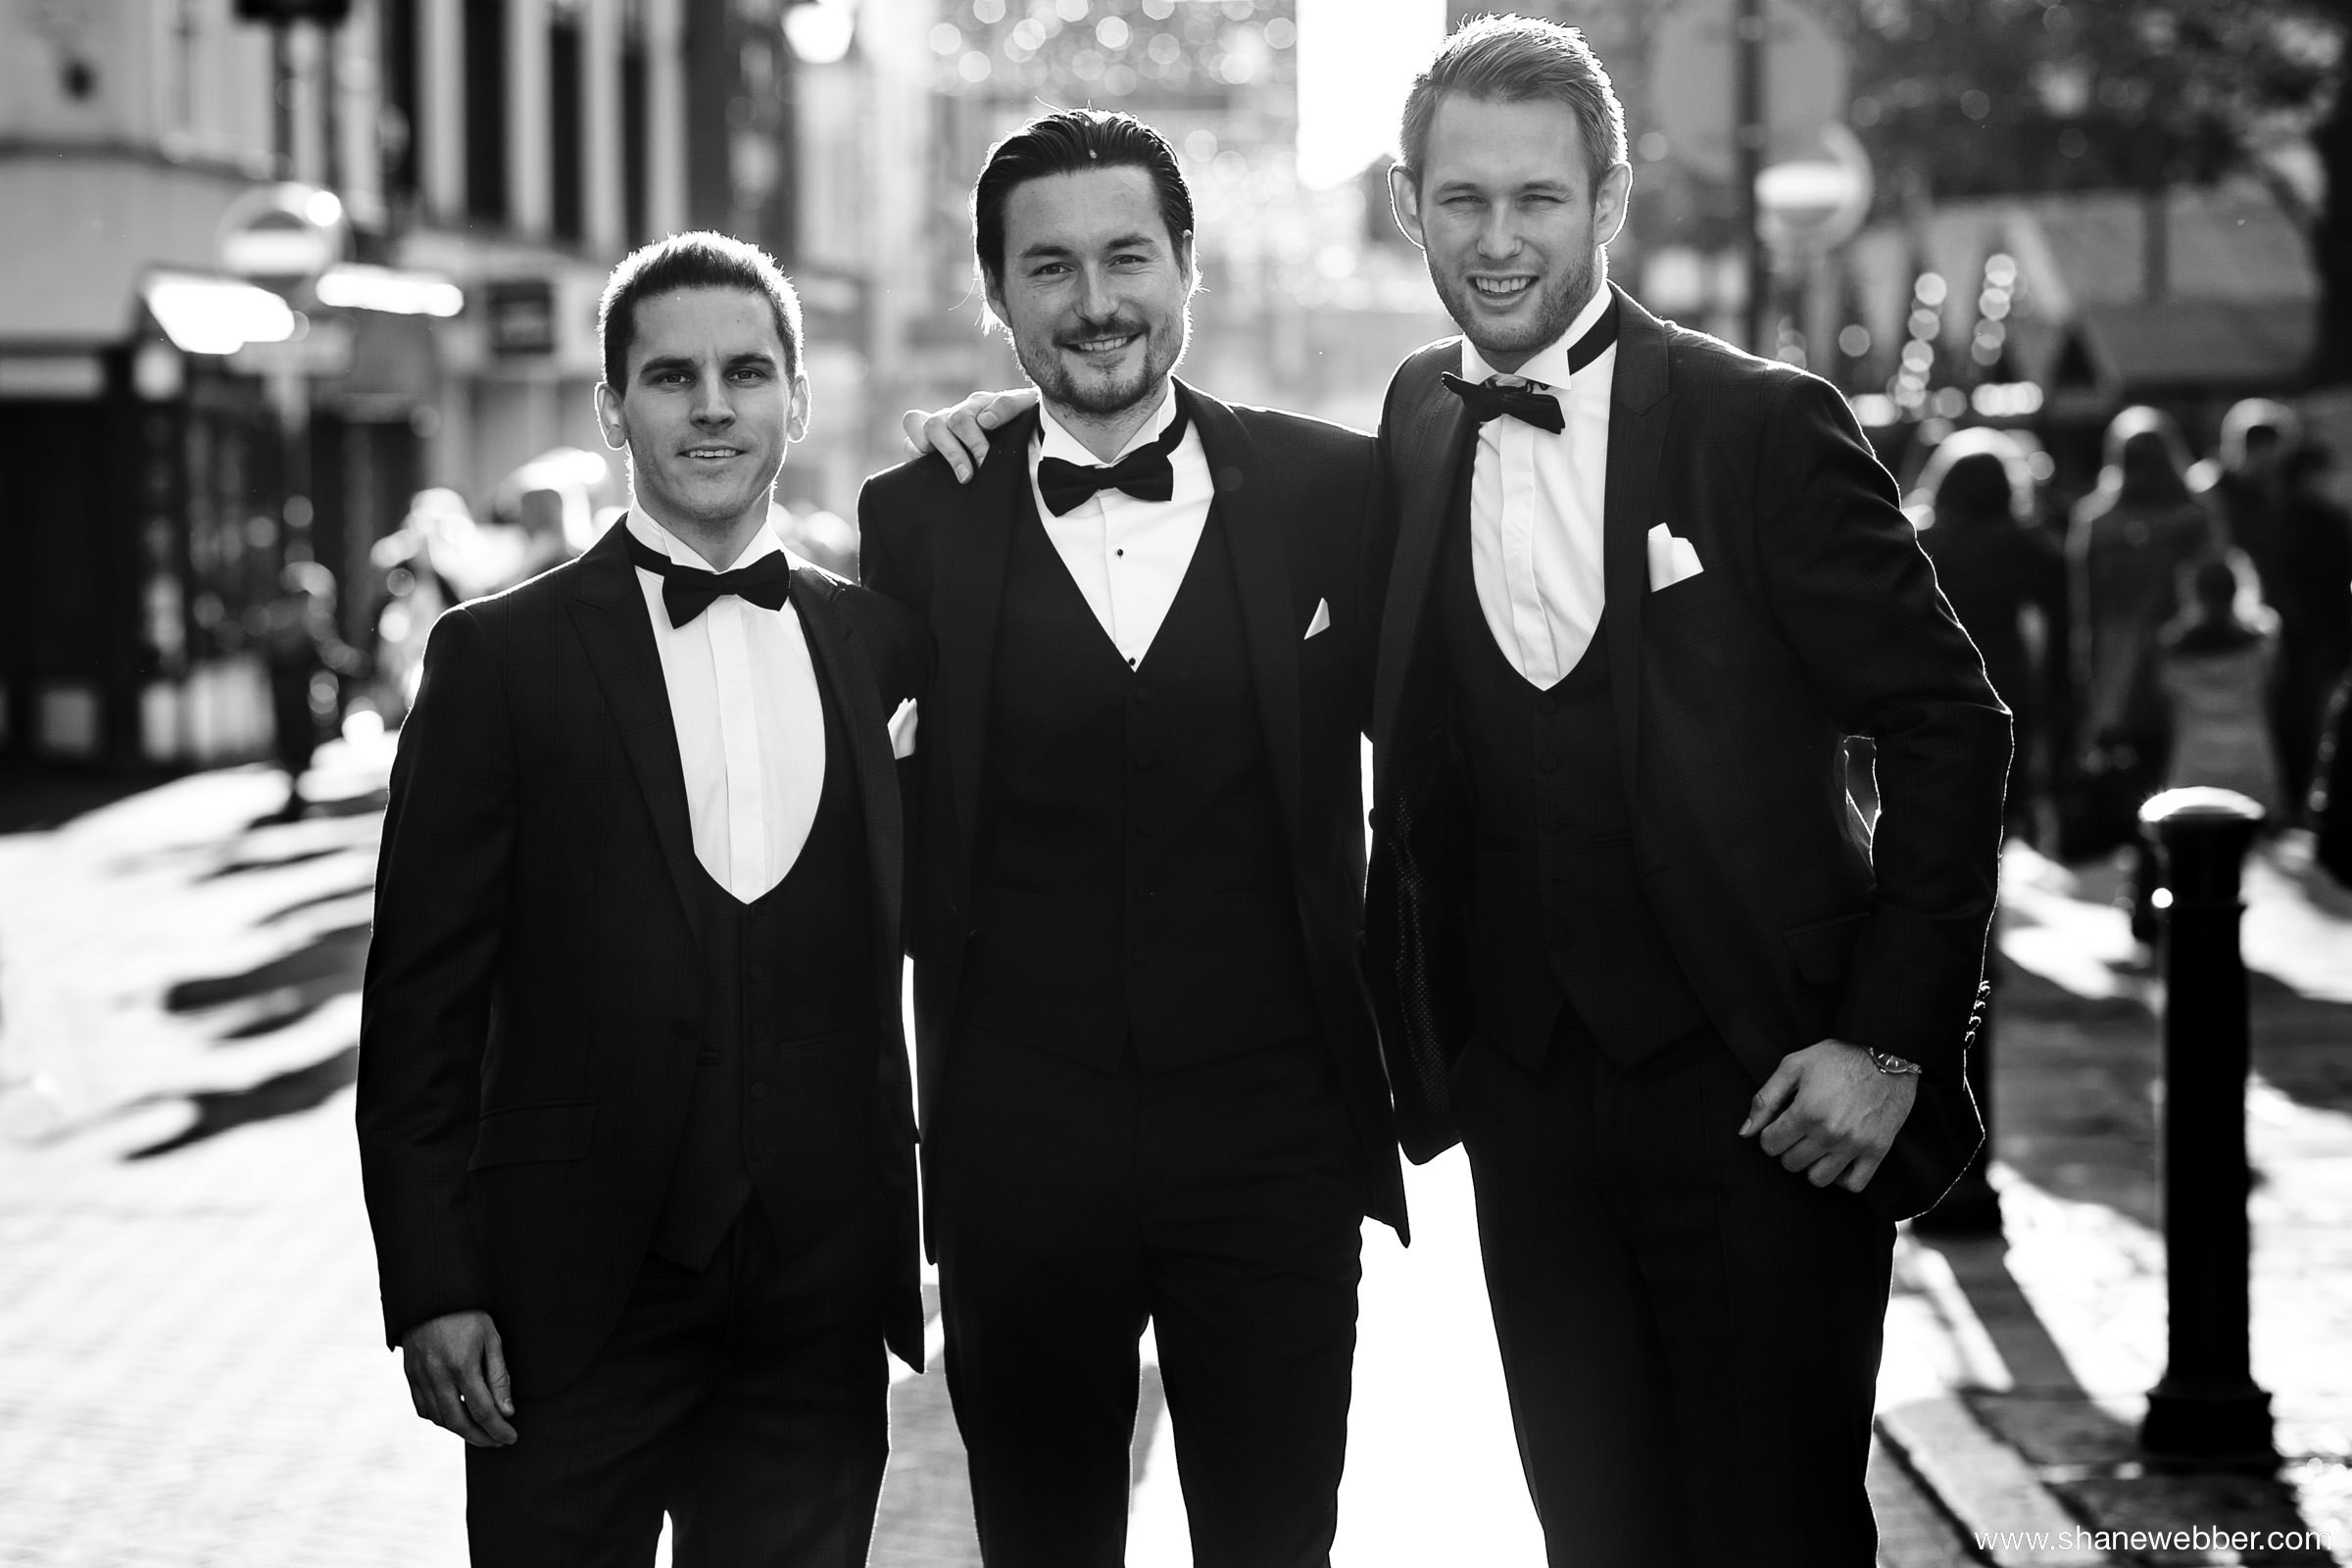 Groom and groomsmen wearing black tie at wedding